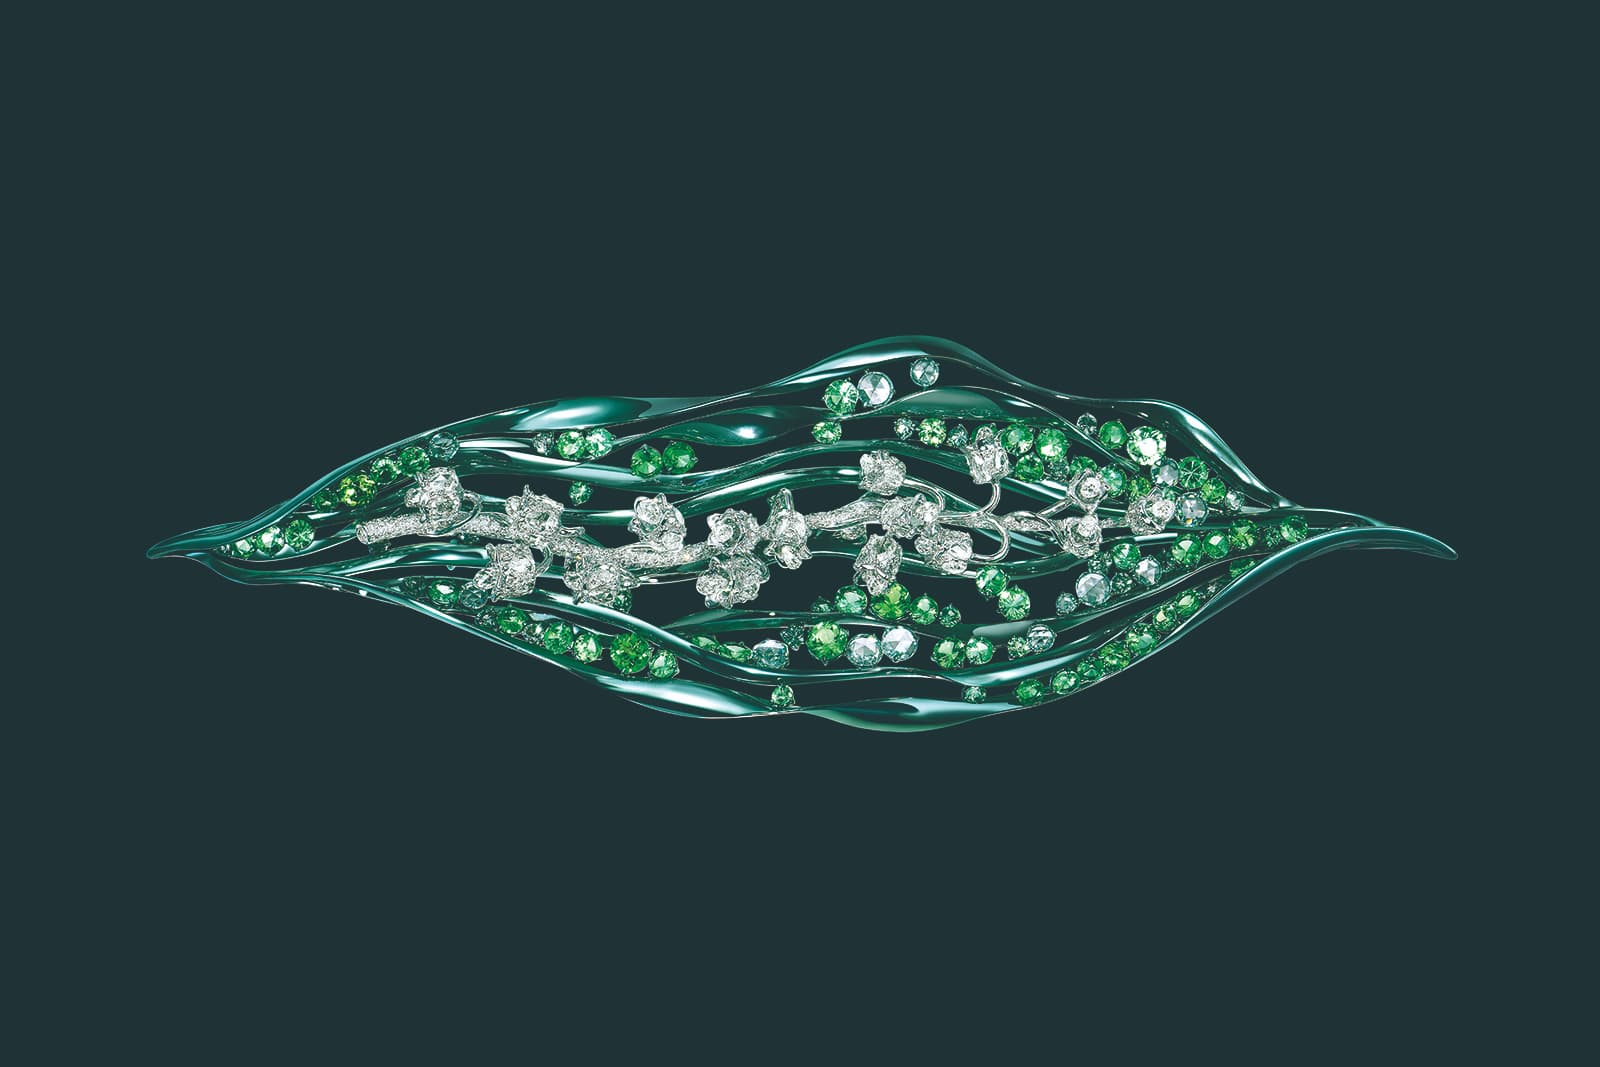 Feng J. 'Garden of Impressionism' collection 'Lily of the Valley' brooch with diamonds, tsavorites and electroplated 18k gold